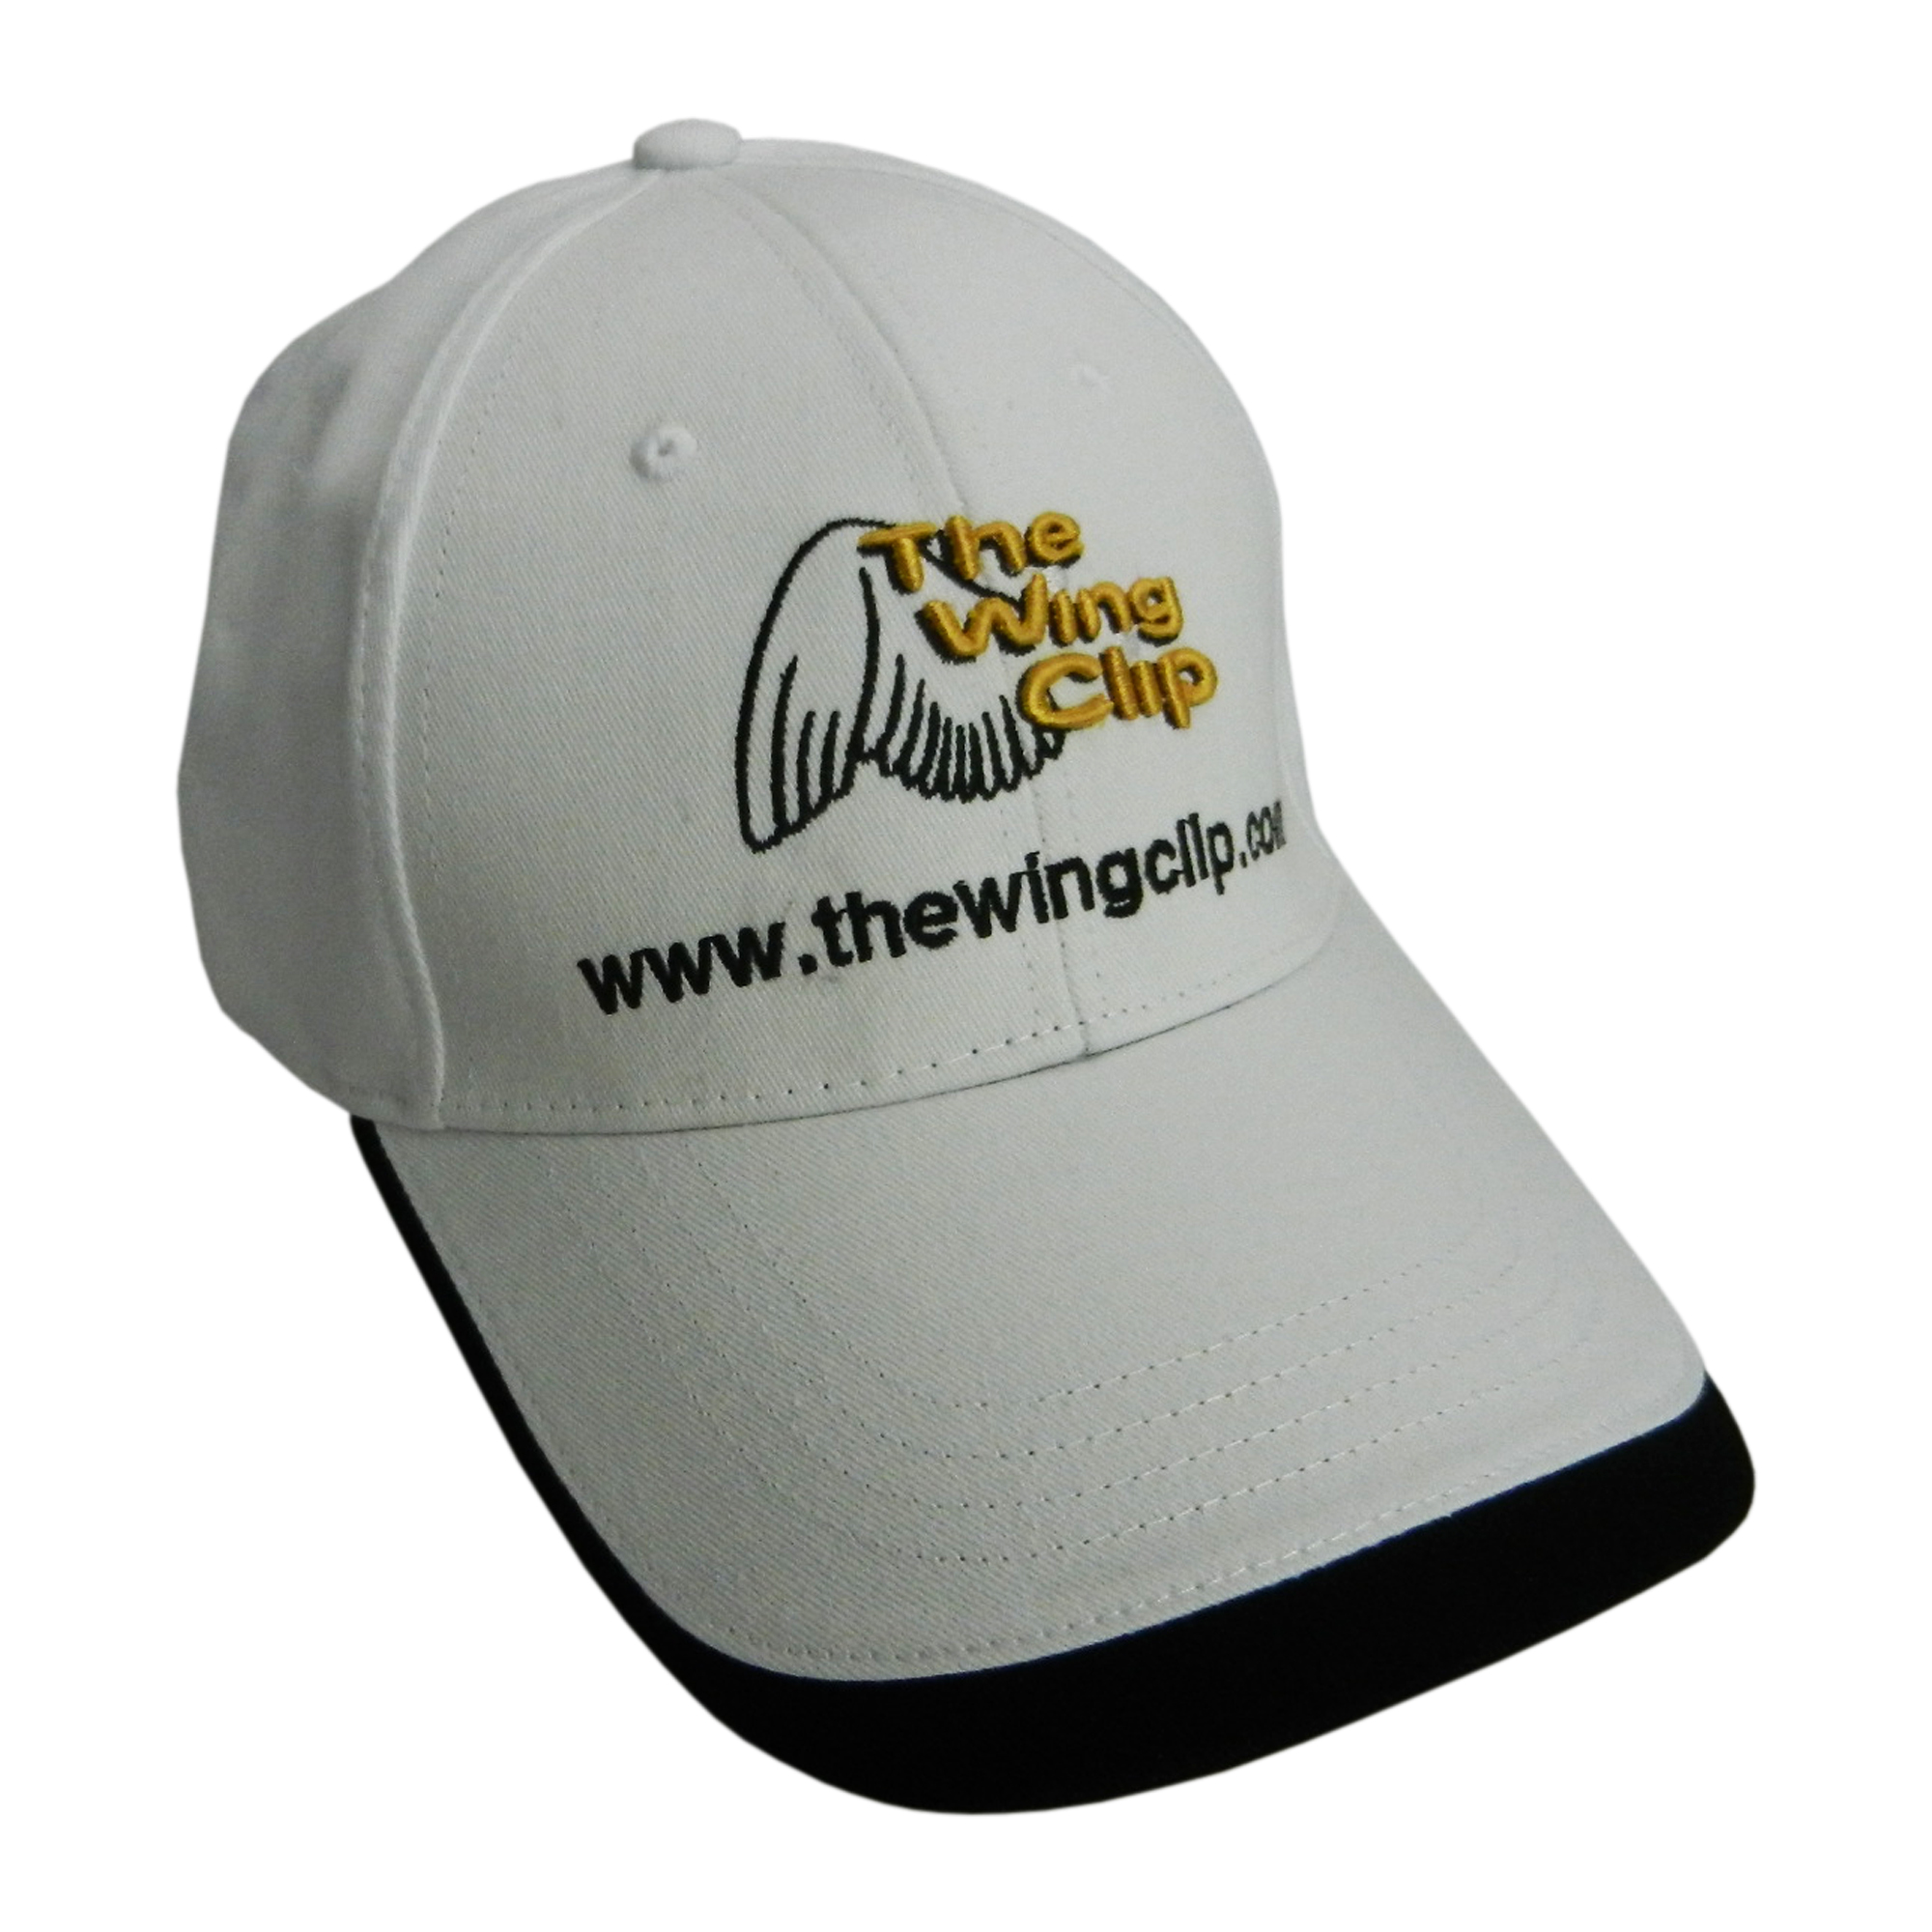 white ball cap with the wing clip logo embroidered